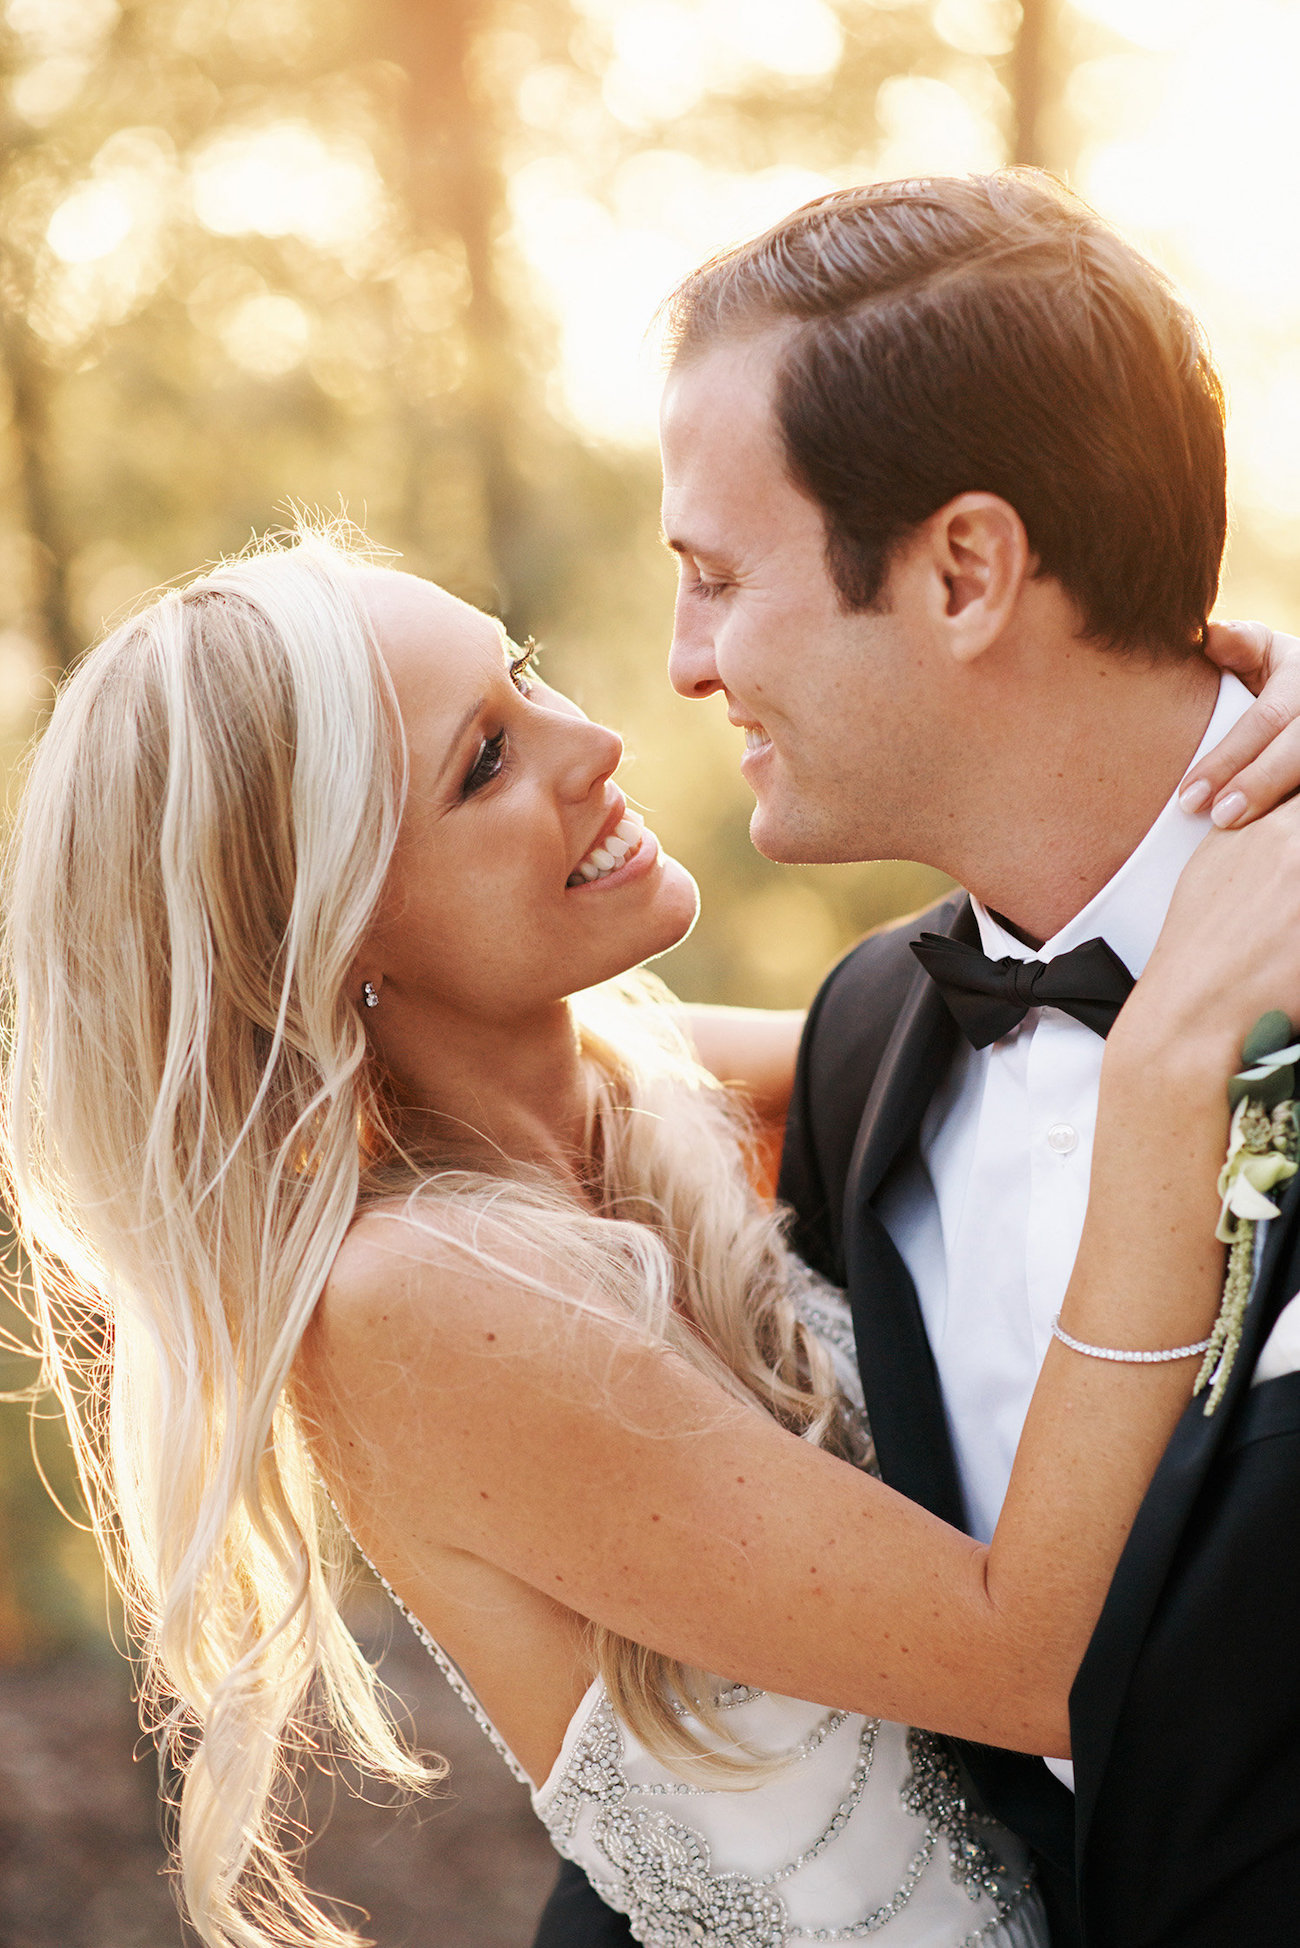 Romantic Portrait of Bride and Groom | Image: Knit Together Photography